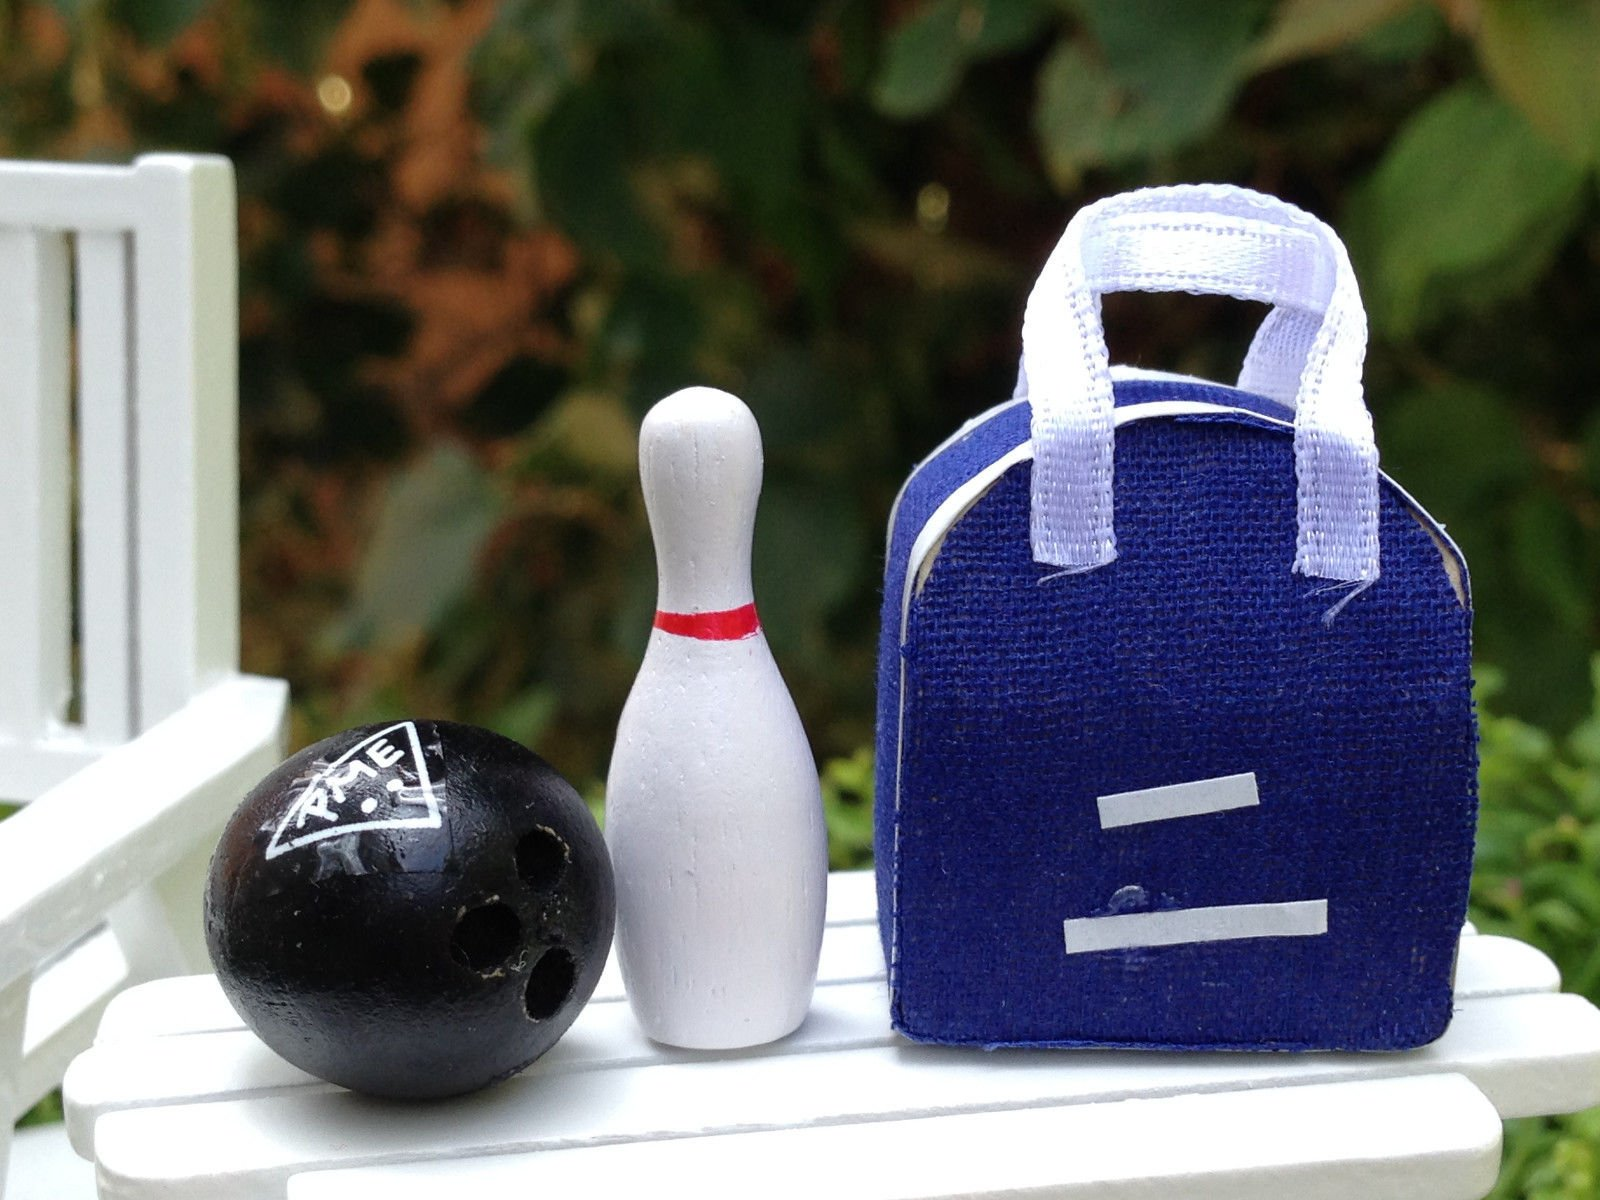 Miniature Dollhouse Fairy Garden Accessories Bowling Bag With Pin & Ball by Miniature (Image #1)